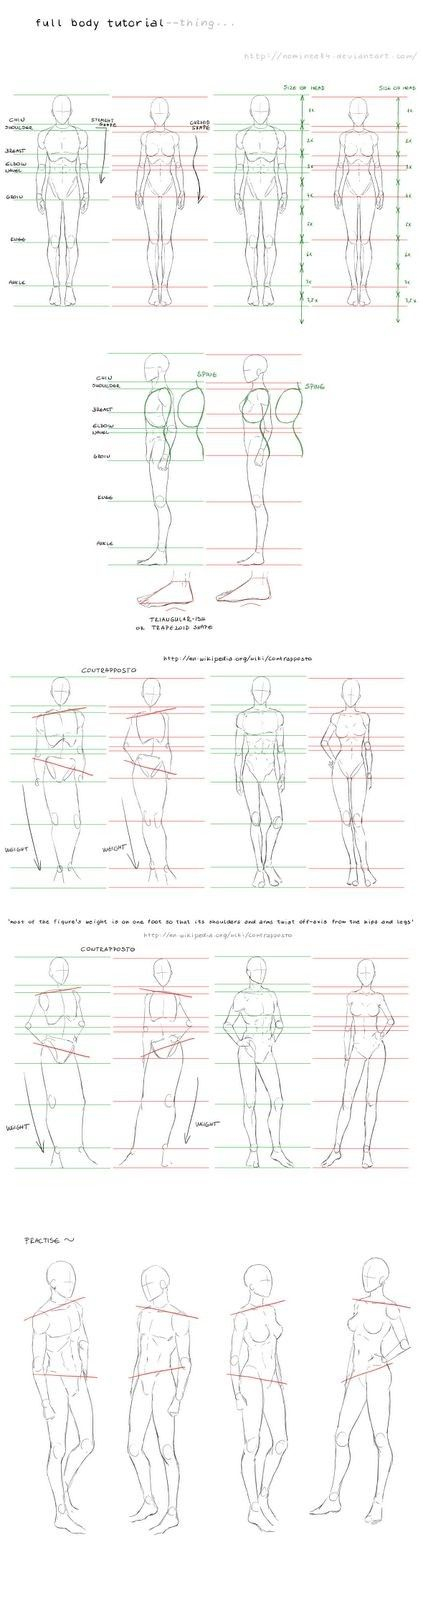 Pin By Tais Skinder On Drawings Pinterest Drawings Anatomy And